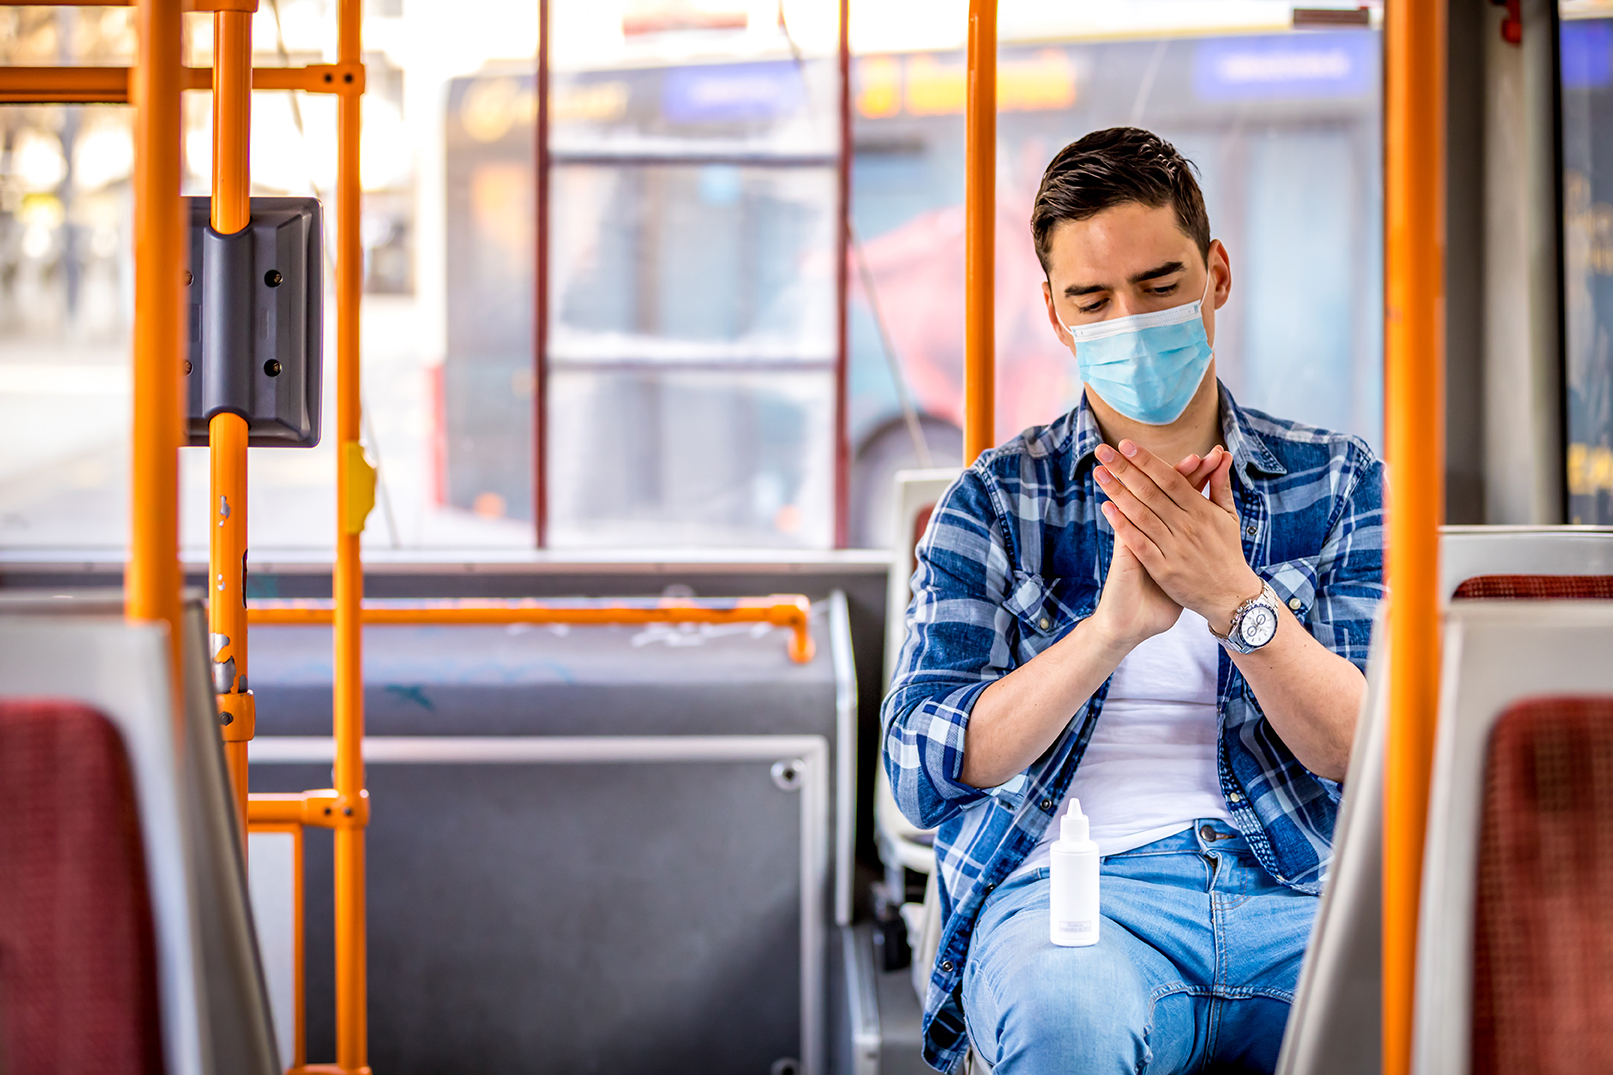 Image of  man in bus wearing medical face mask to protect coronavirus Covid-19 virus, pollution, face masks travelling during global health emergency, bird flu, respiratory problem, viral pneumonia, SARS, illnesses, quarantine and diseases